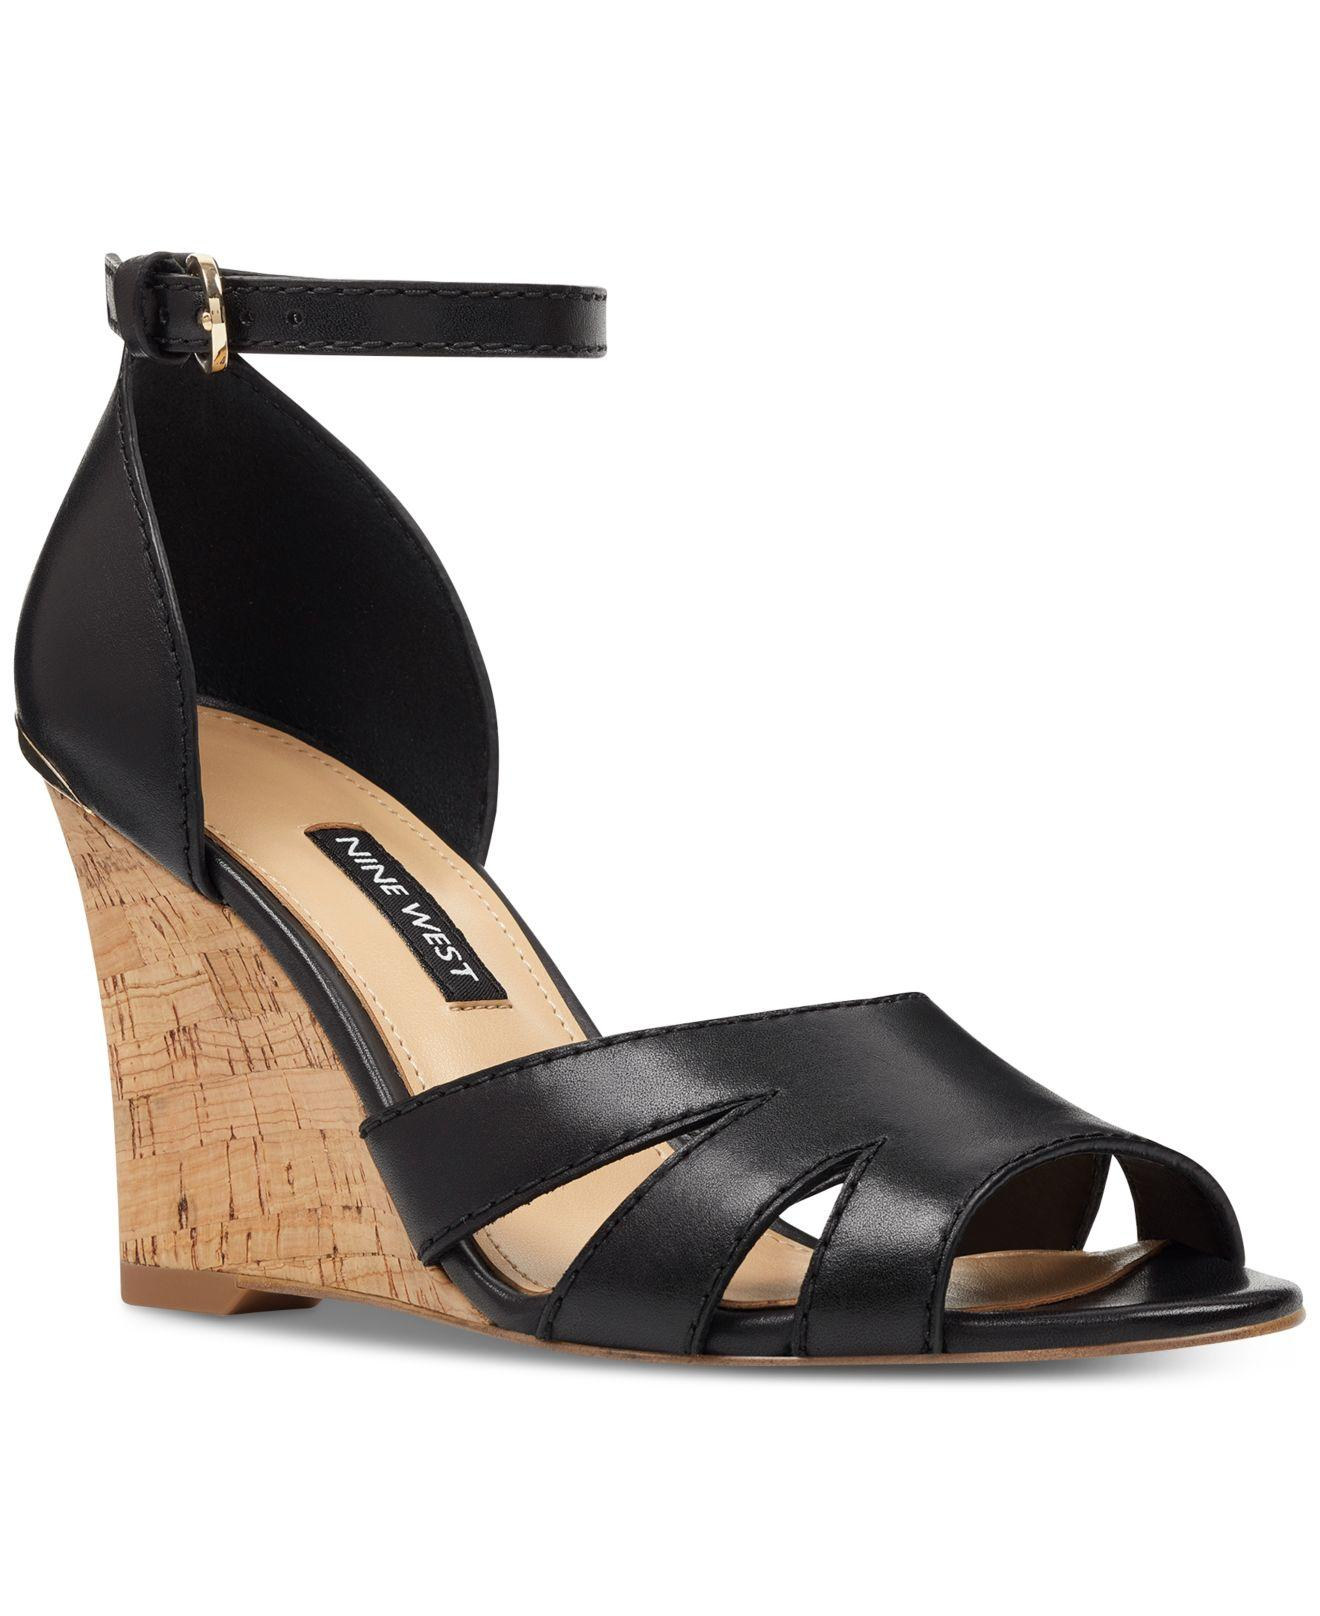 a780d59a1b Nine West - Black Lilly Wedge Sandals - Lyst. View fullscreen